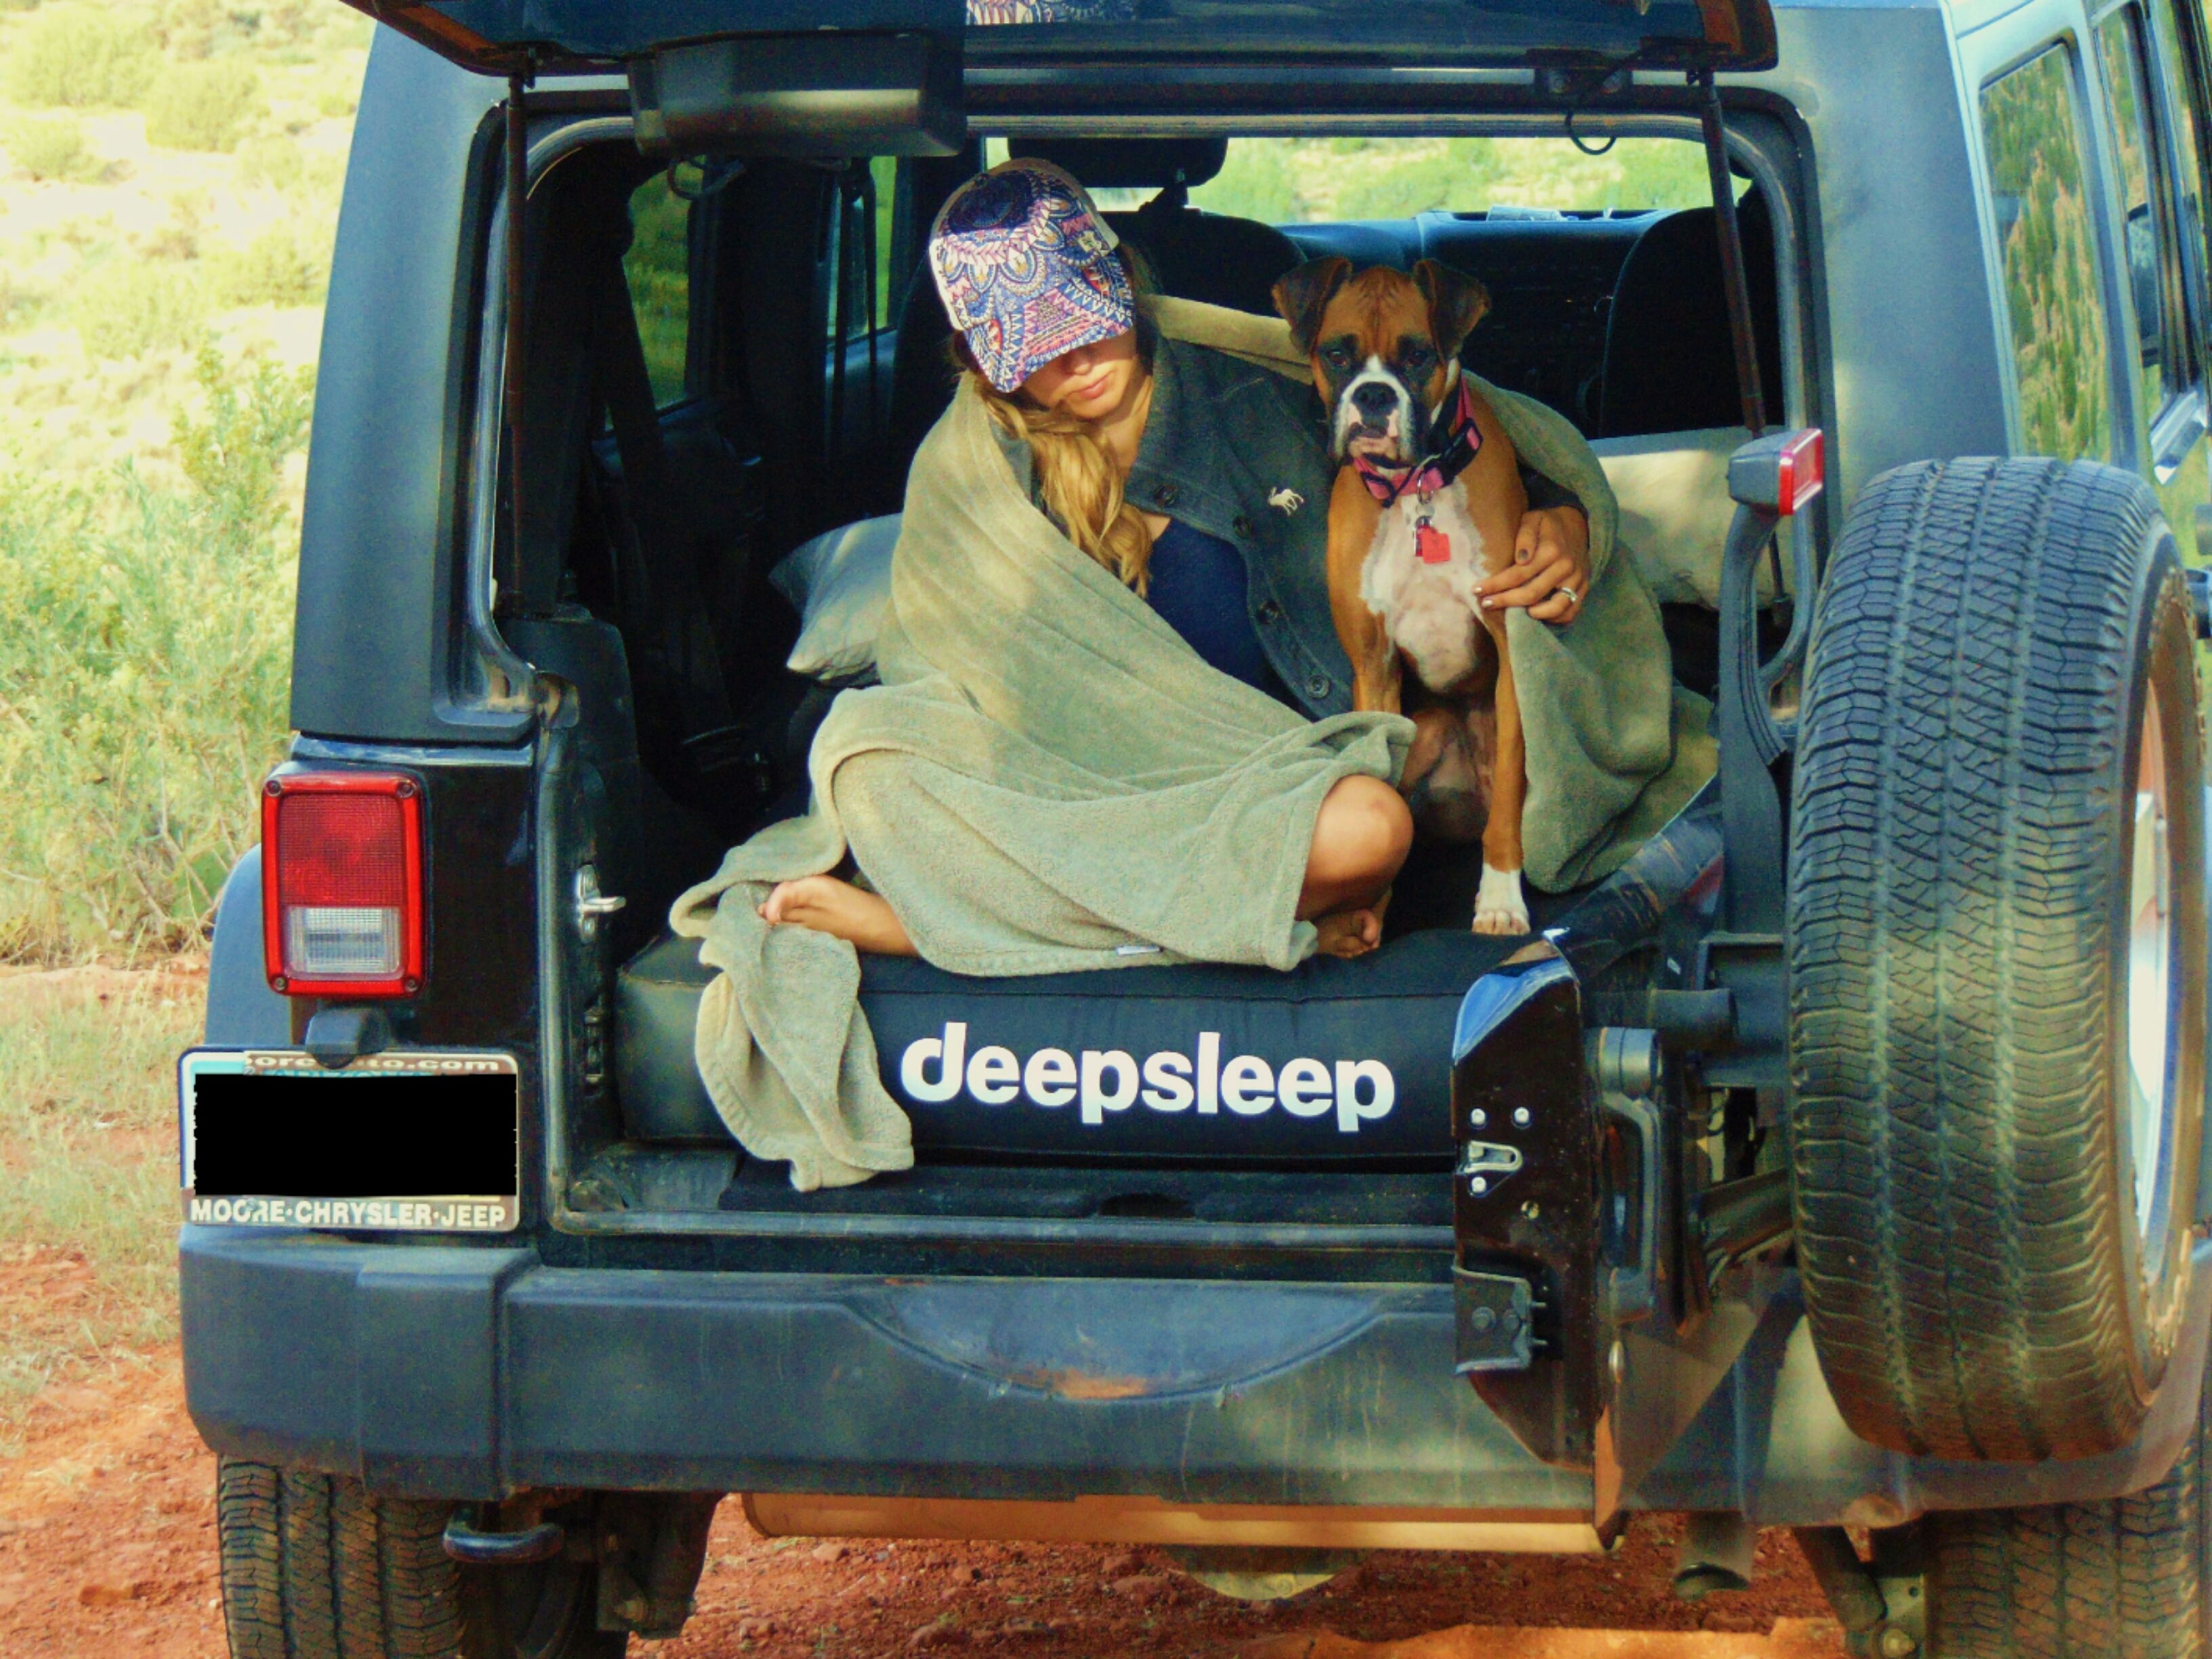 Deepsleep Is A Contoured Air Mattress Customized For Jeep Wranglers Jk It Is An Accessory Made For Camping Or Re Jeep Wrangler Camping Jeep Camping Beach Jeep